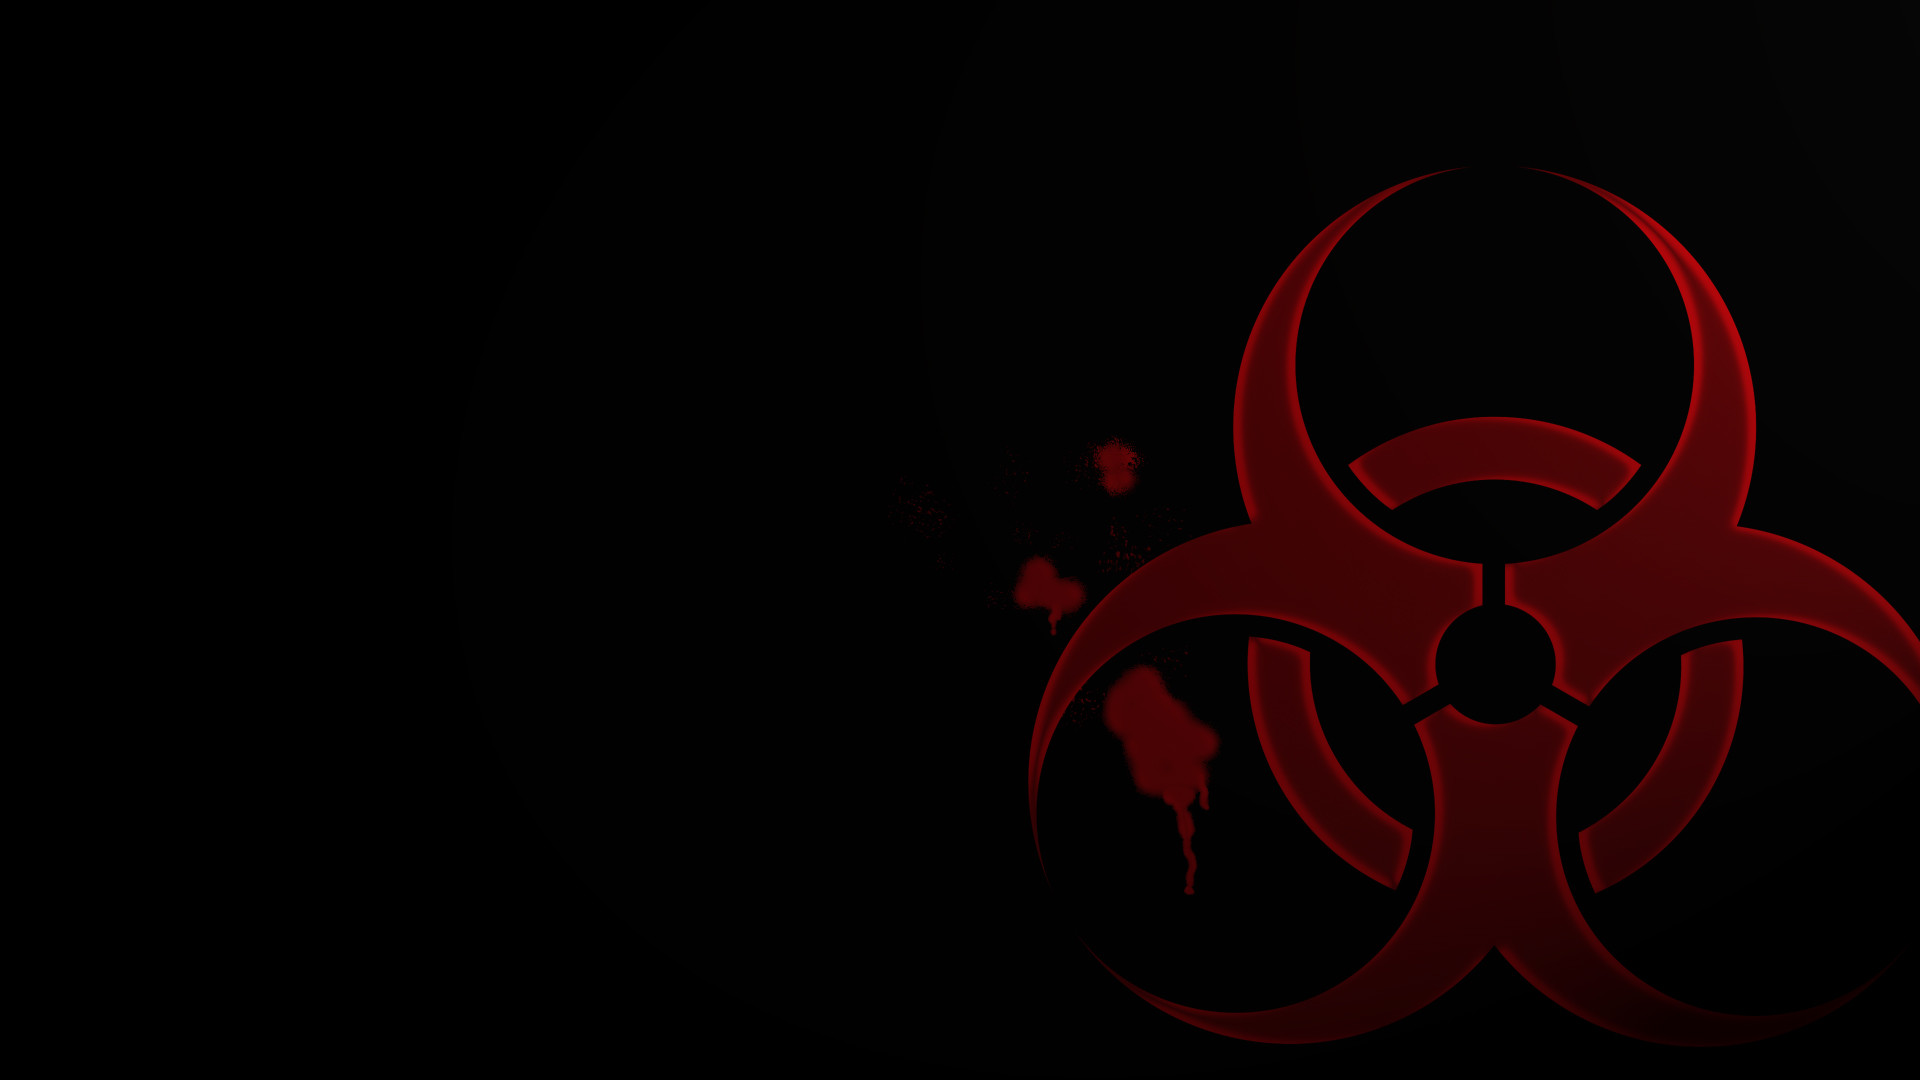 Res: 1920x1080, ... Wallpapers - 2500x1038 · Laptop Biohazard High Definition Background  Pictures -  ...